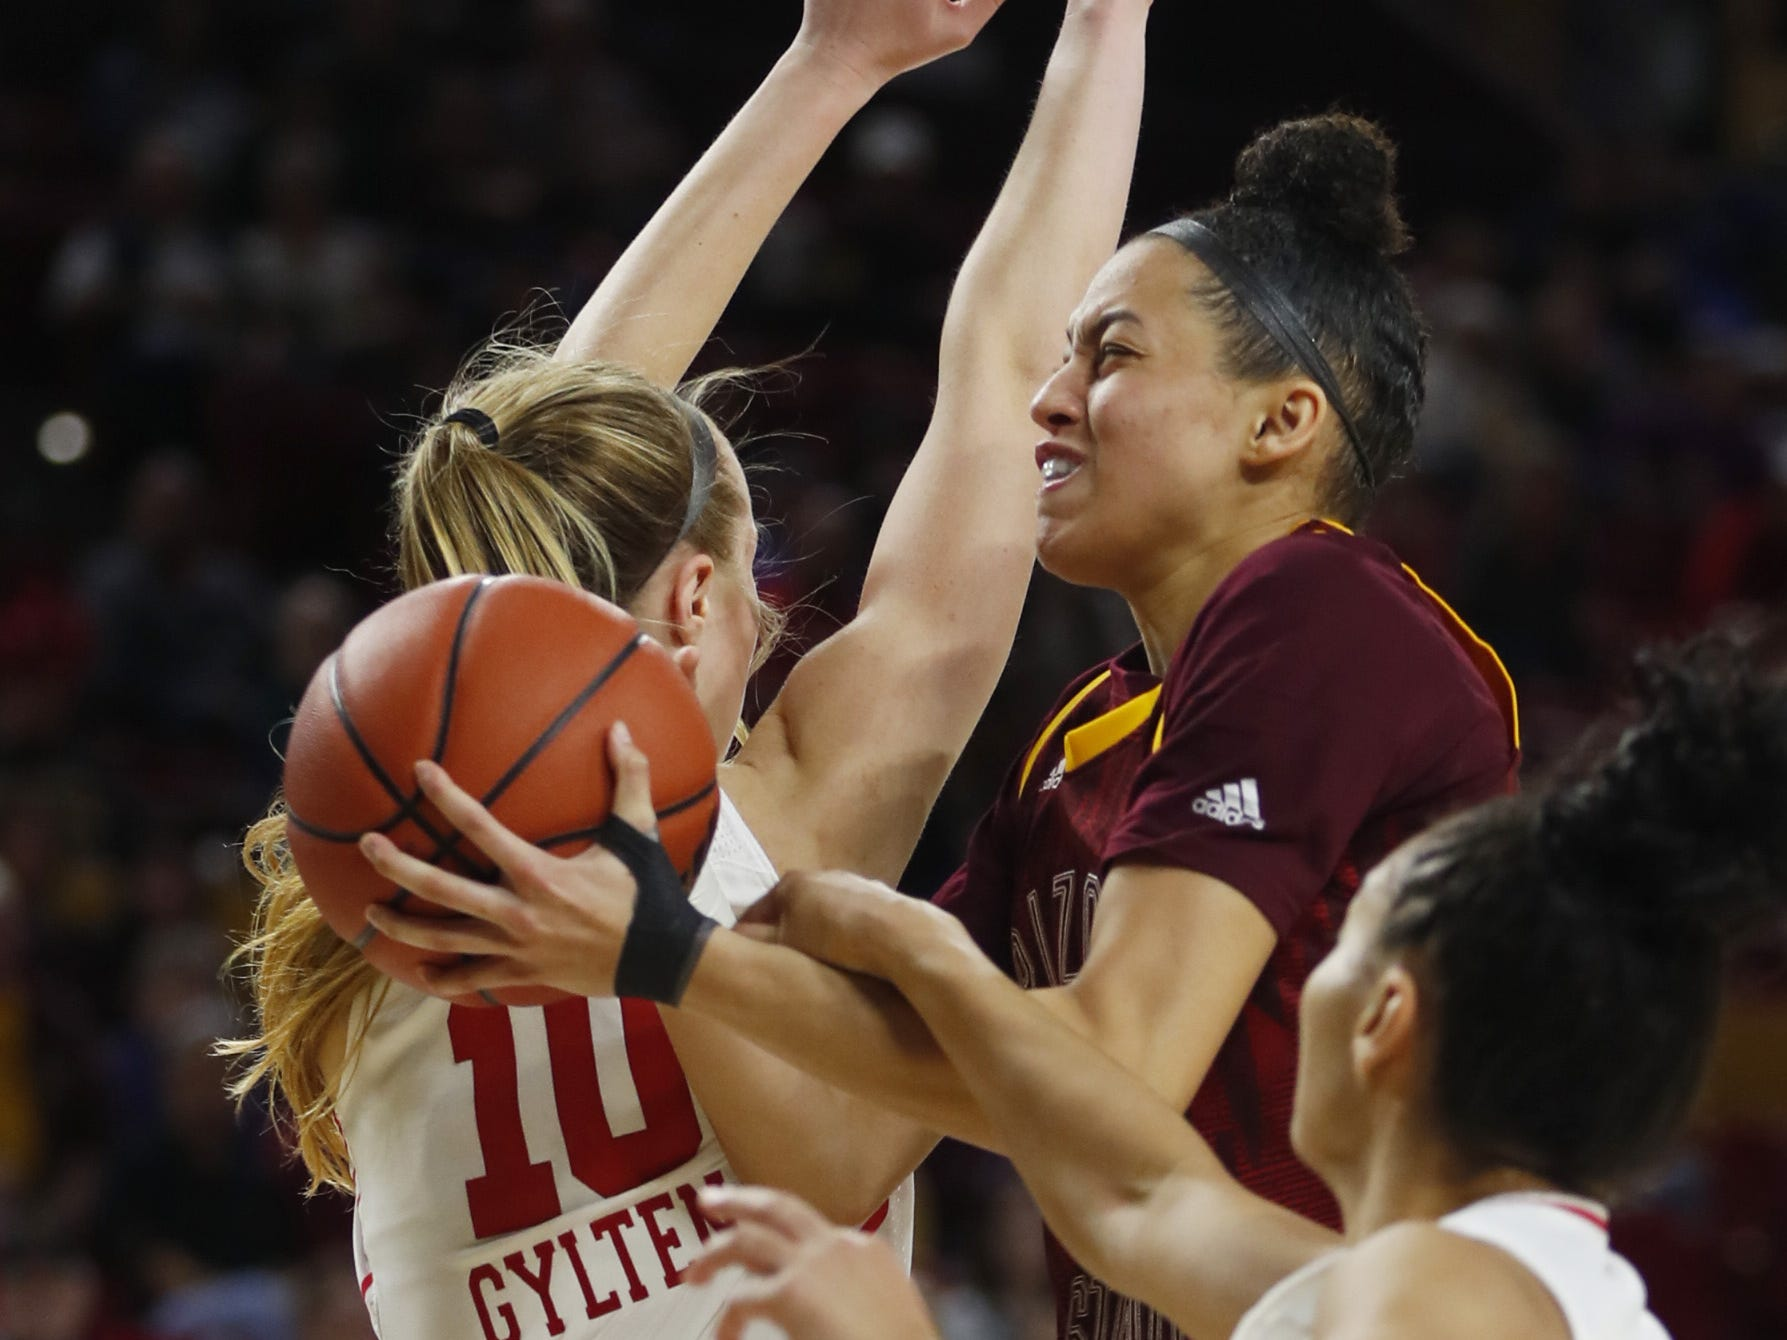 ASU's Reili Richardson (1) drives to the basket against Utah's Kiana Moore (0) during the second half at Wells Fargo Arena in Tempe, Ariz. on February 17, 2019.